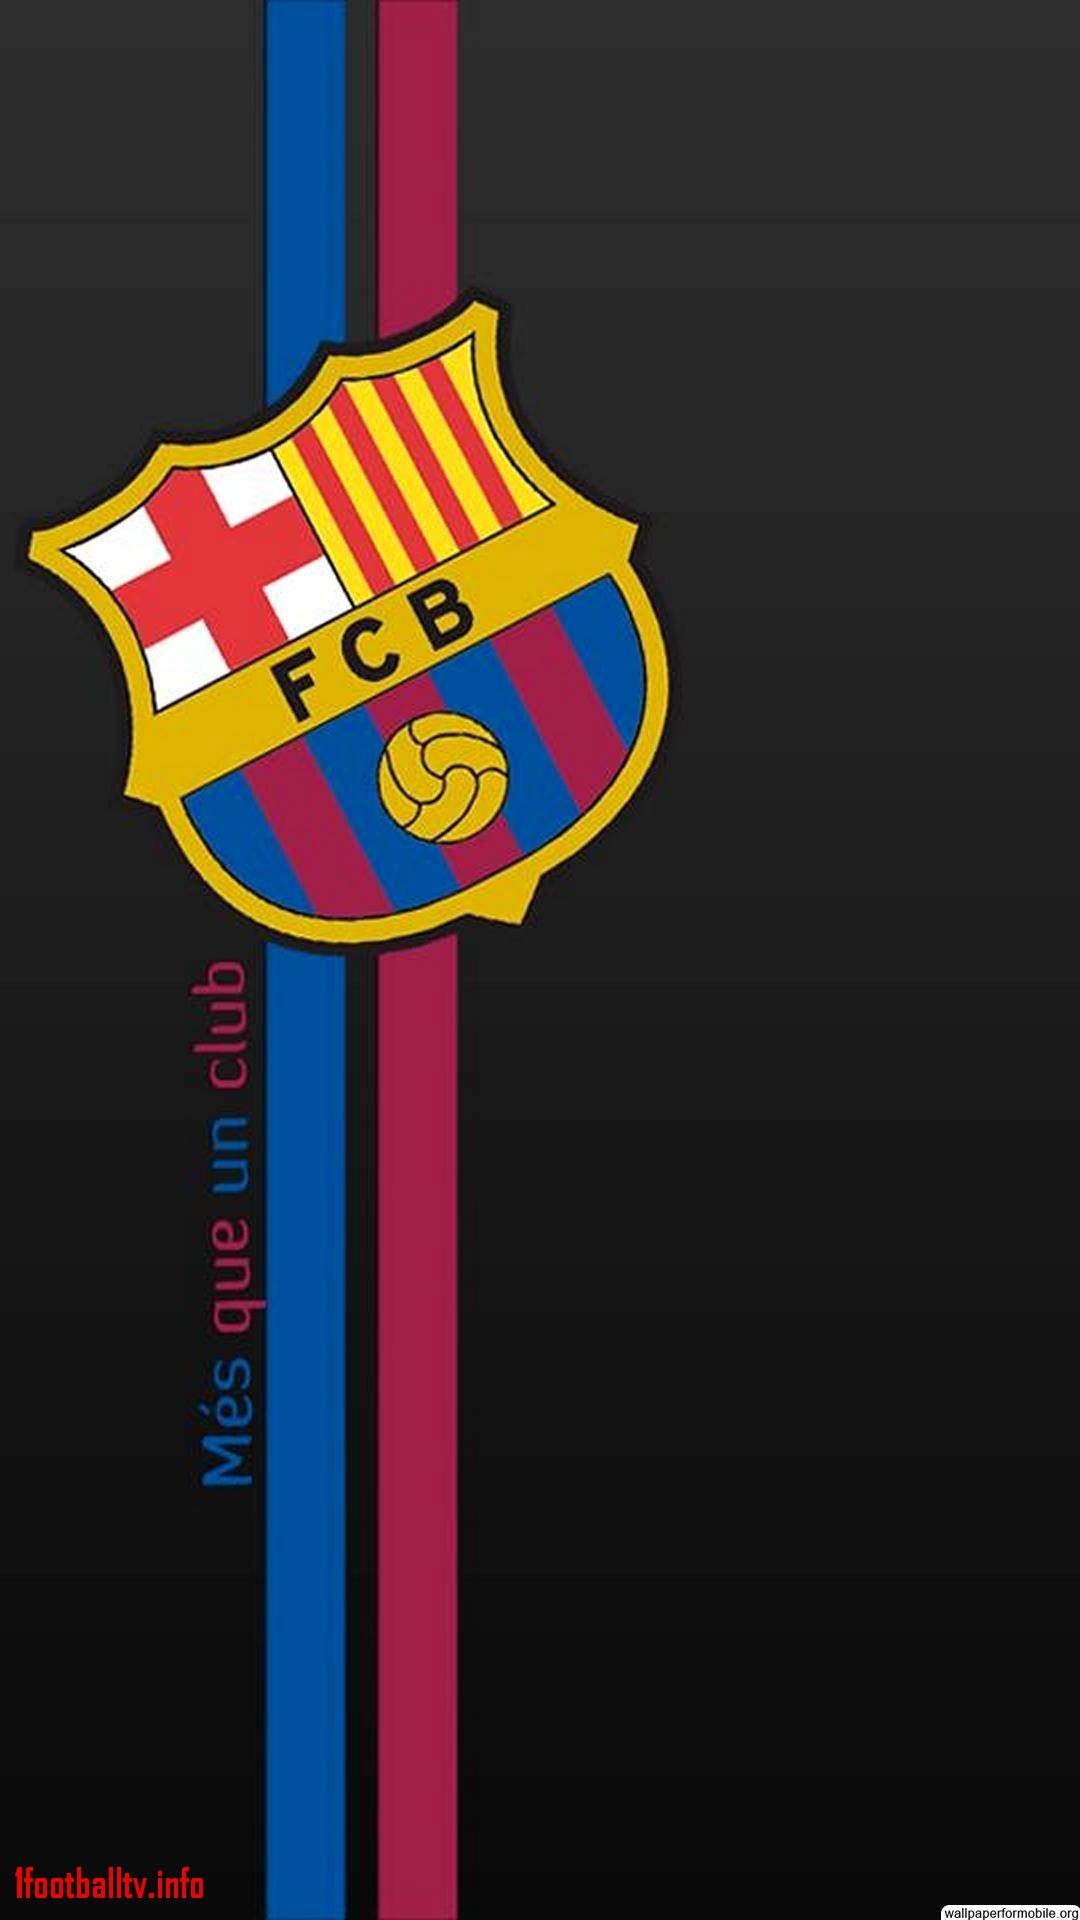 Fc Barcelona Wallpaper For Android Posted By Christopher Sellers